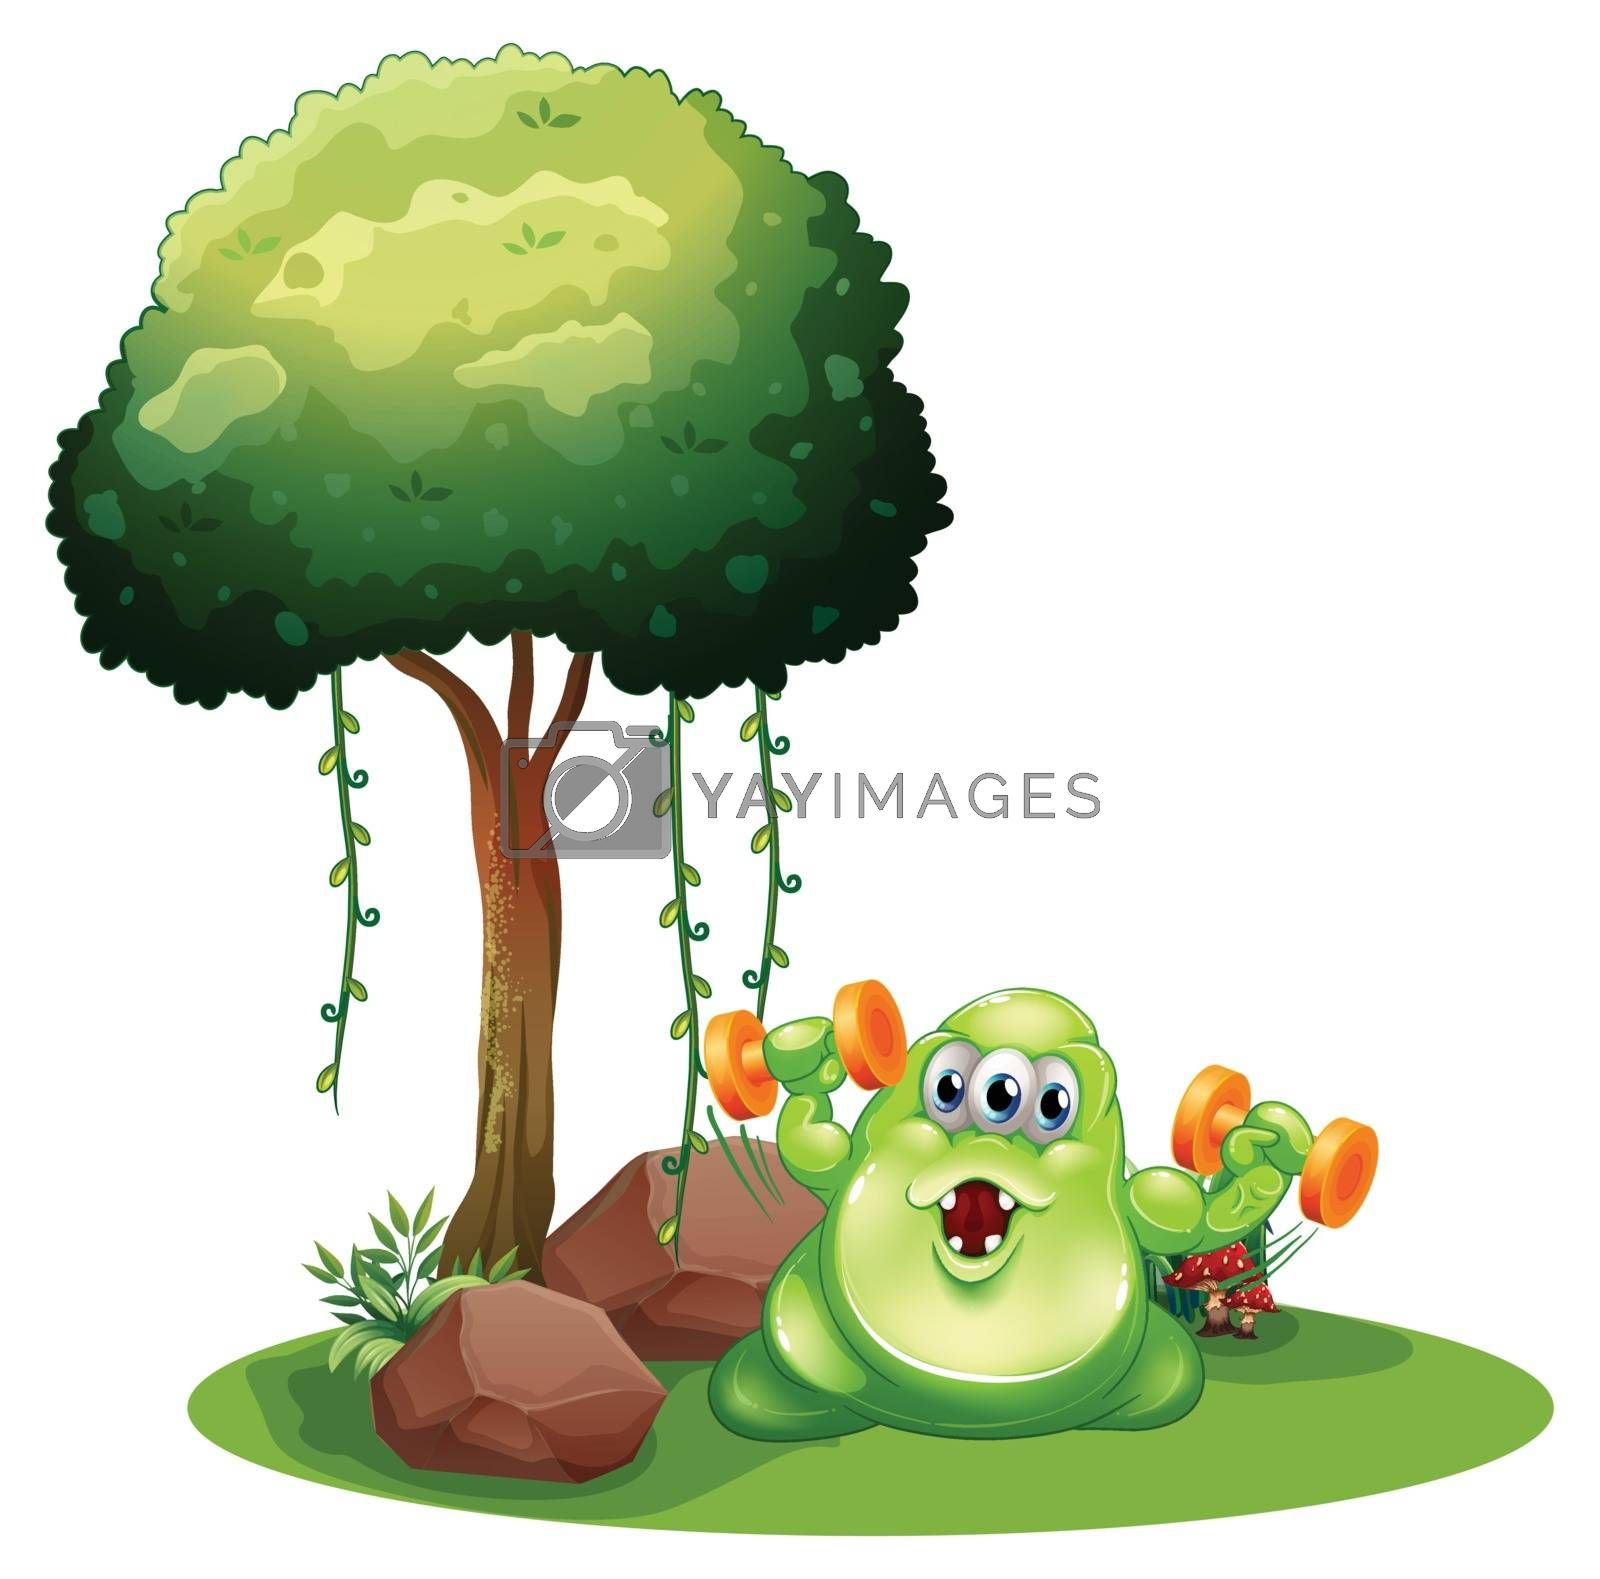 Illustration of a fat green monster with a barbell exercising near the tree on a white background